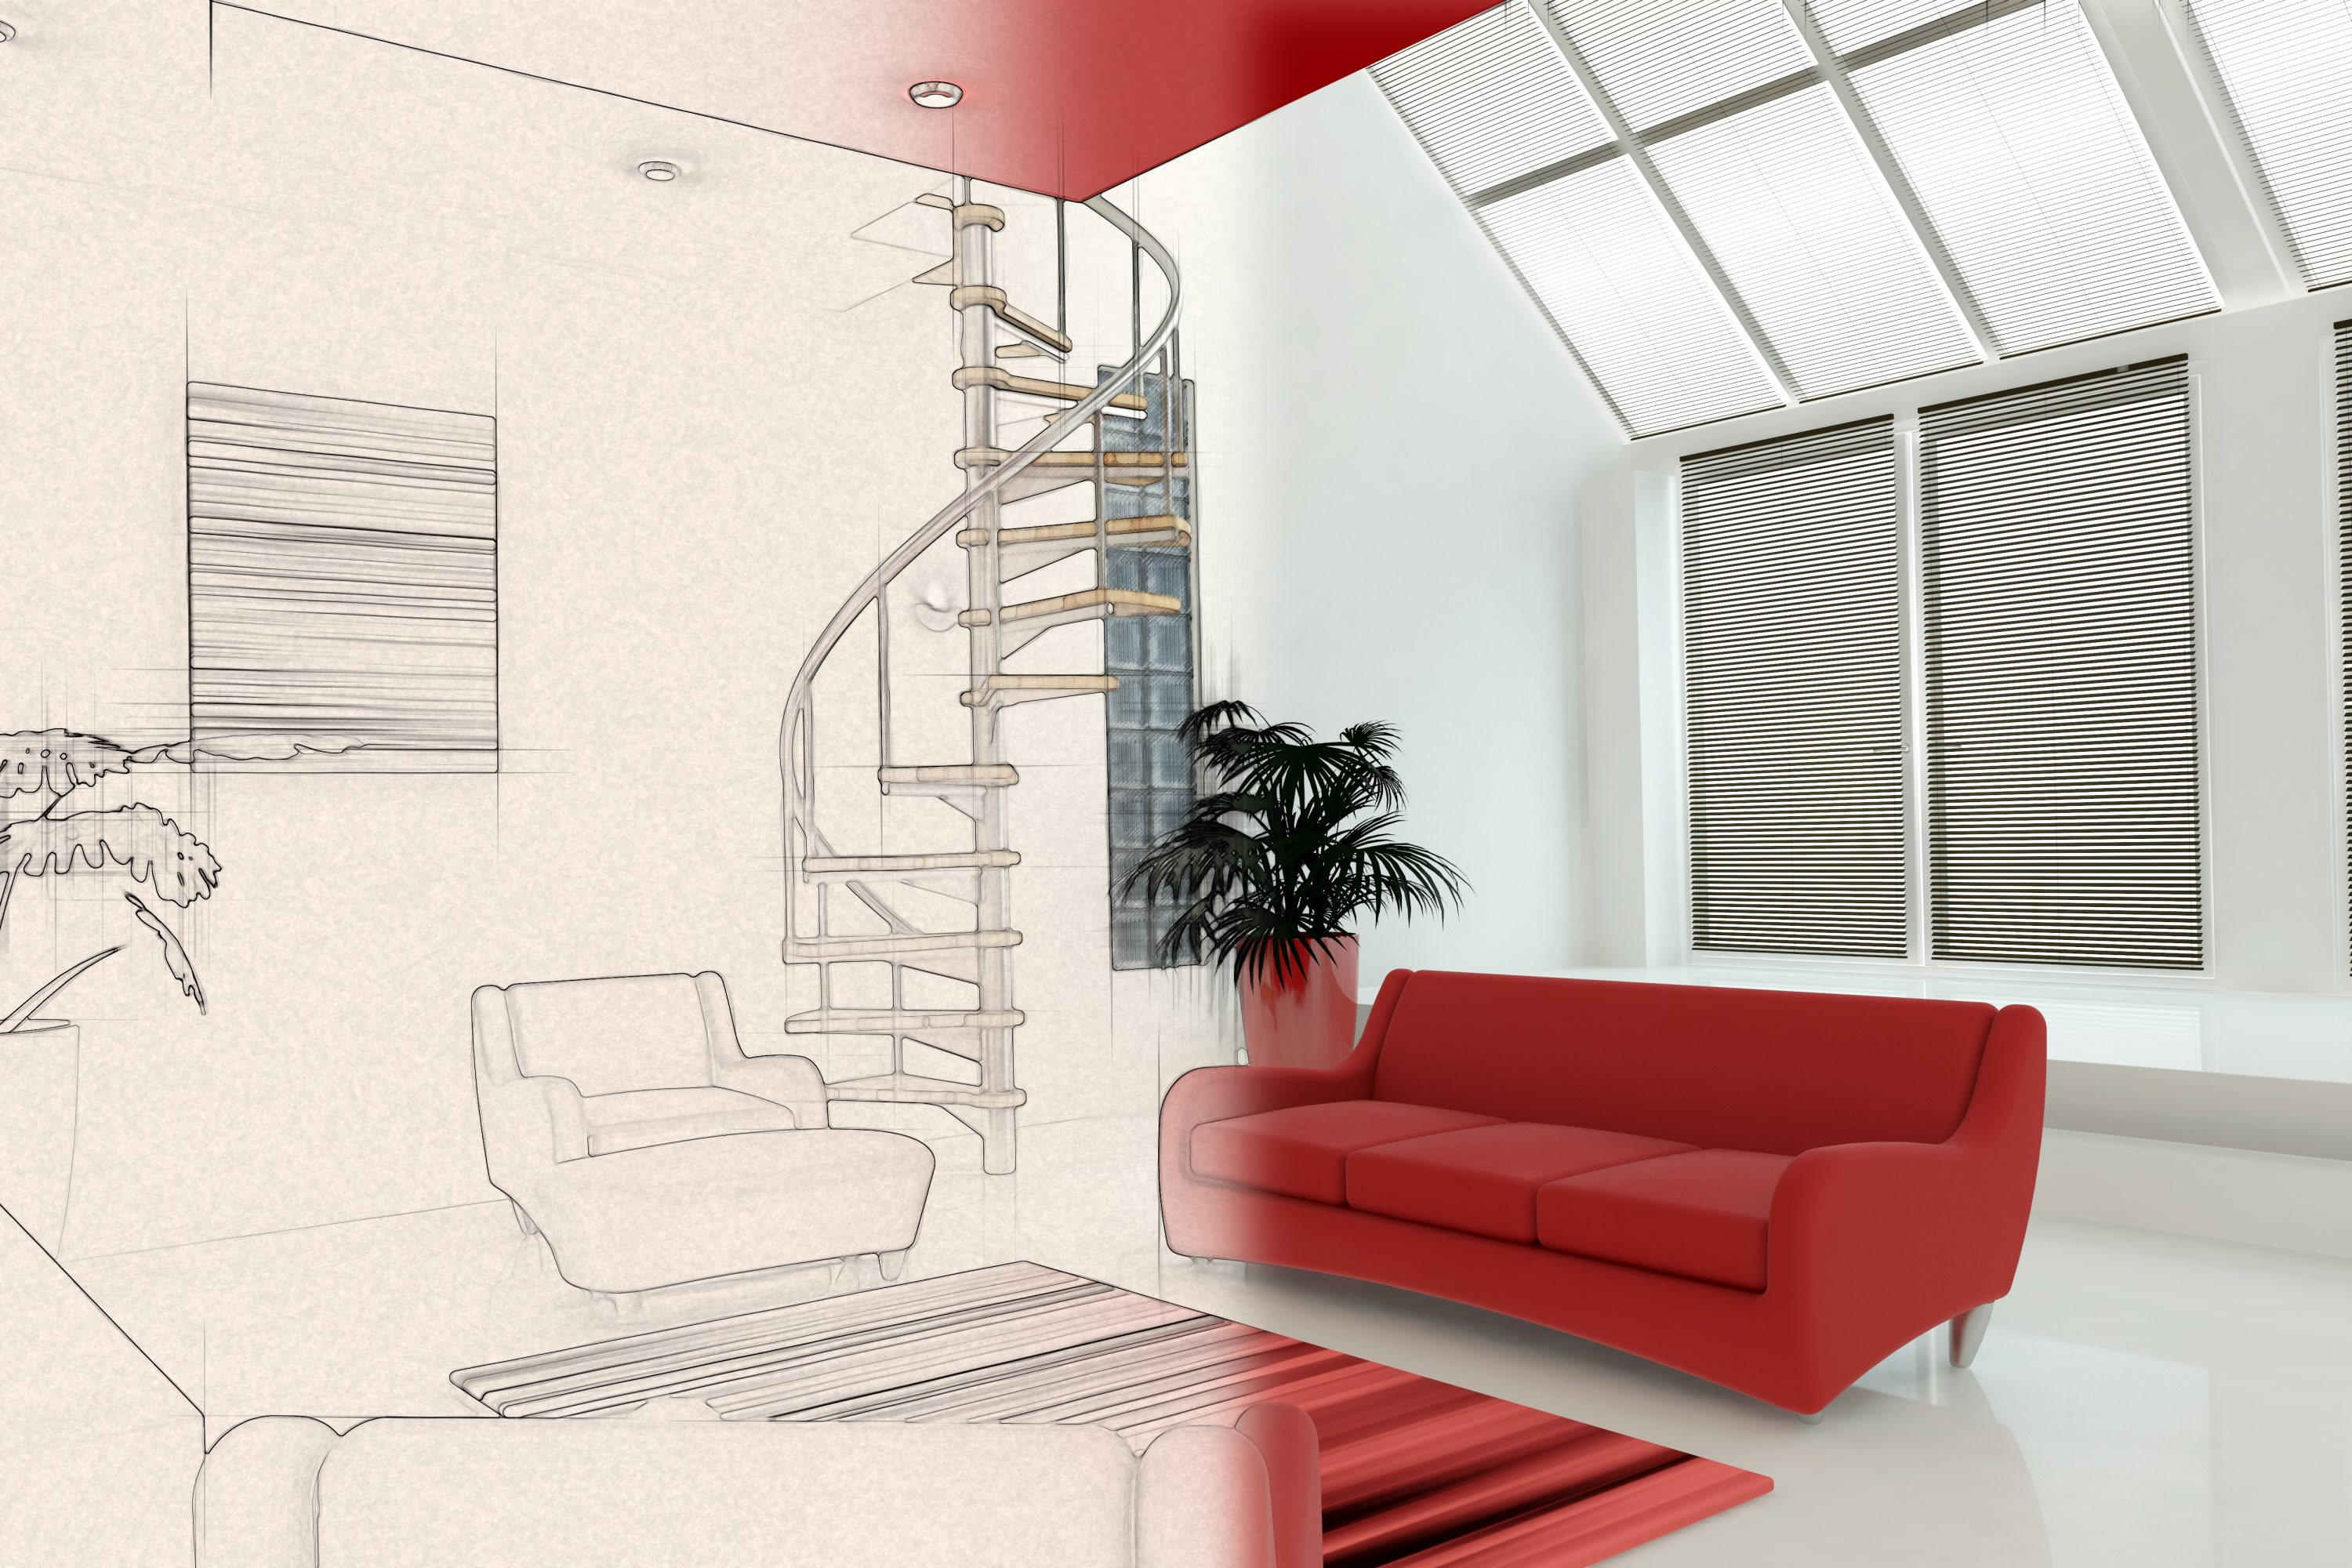 3D render of a contemporary interior with half in sketch phase